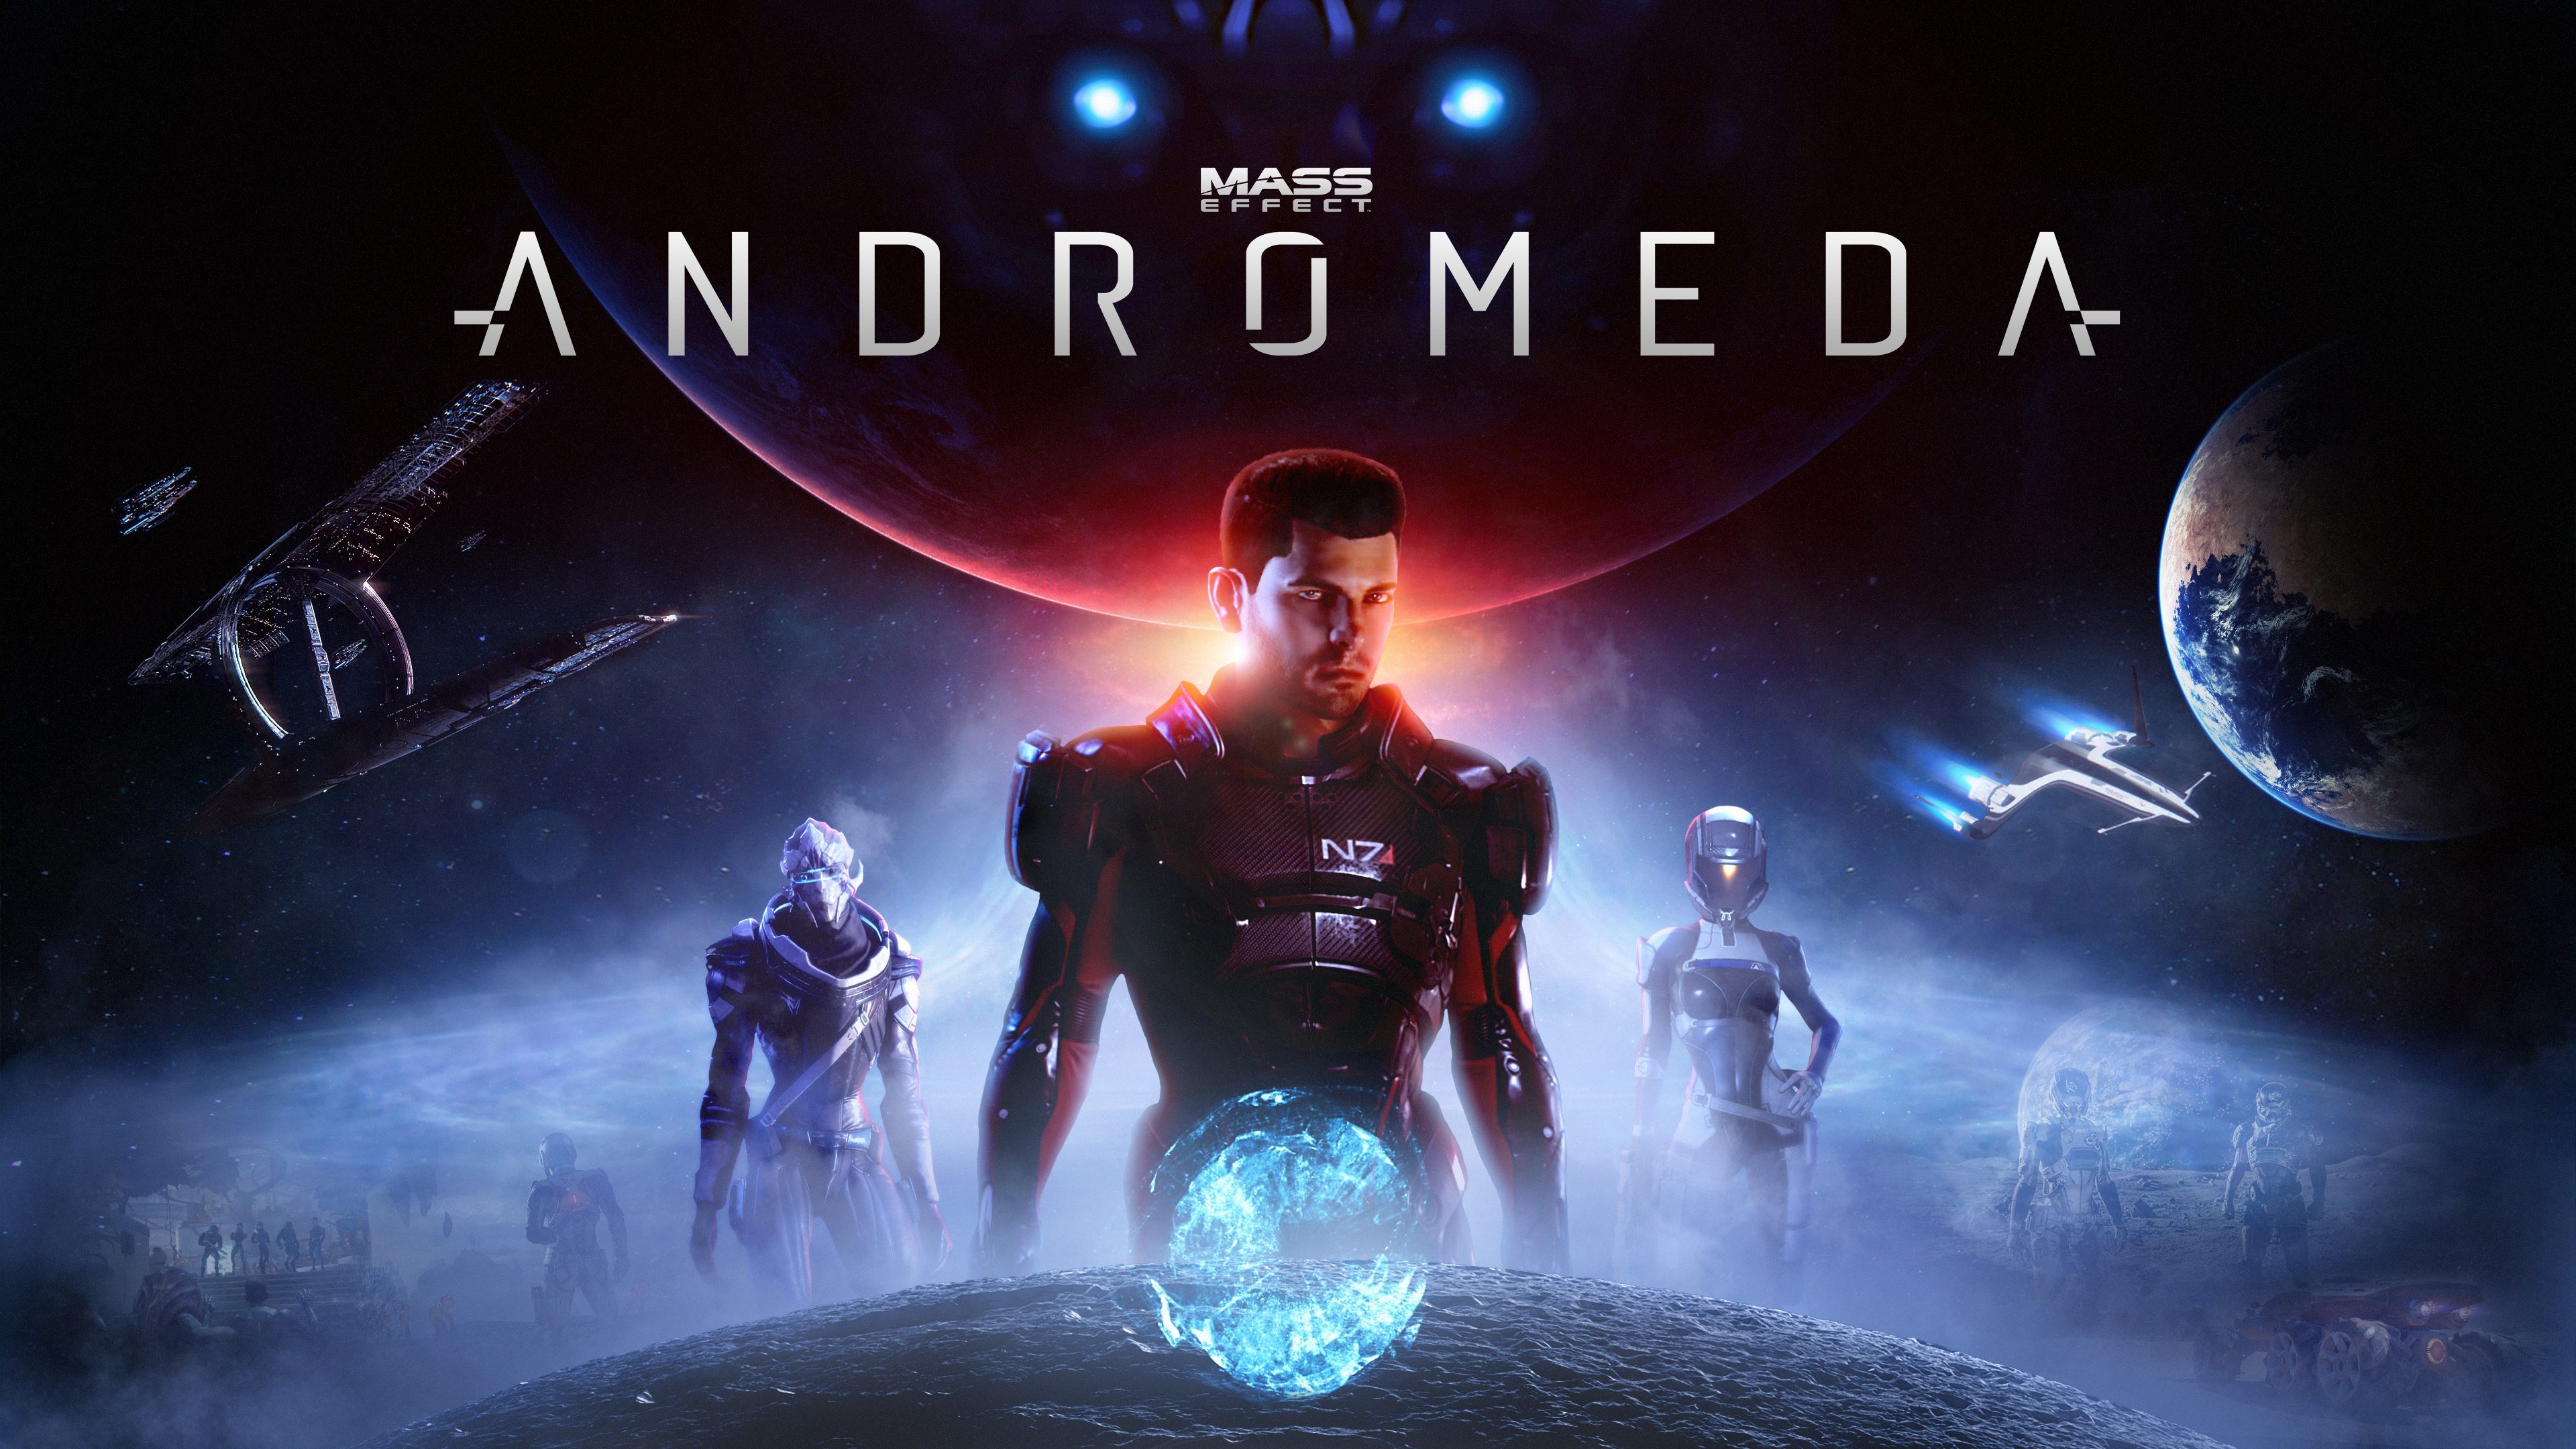 101 Mass Effect Andromeda Hd Wallpapers Background Images